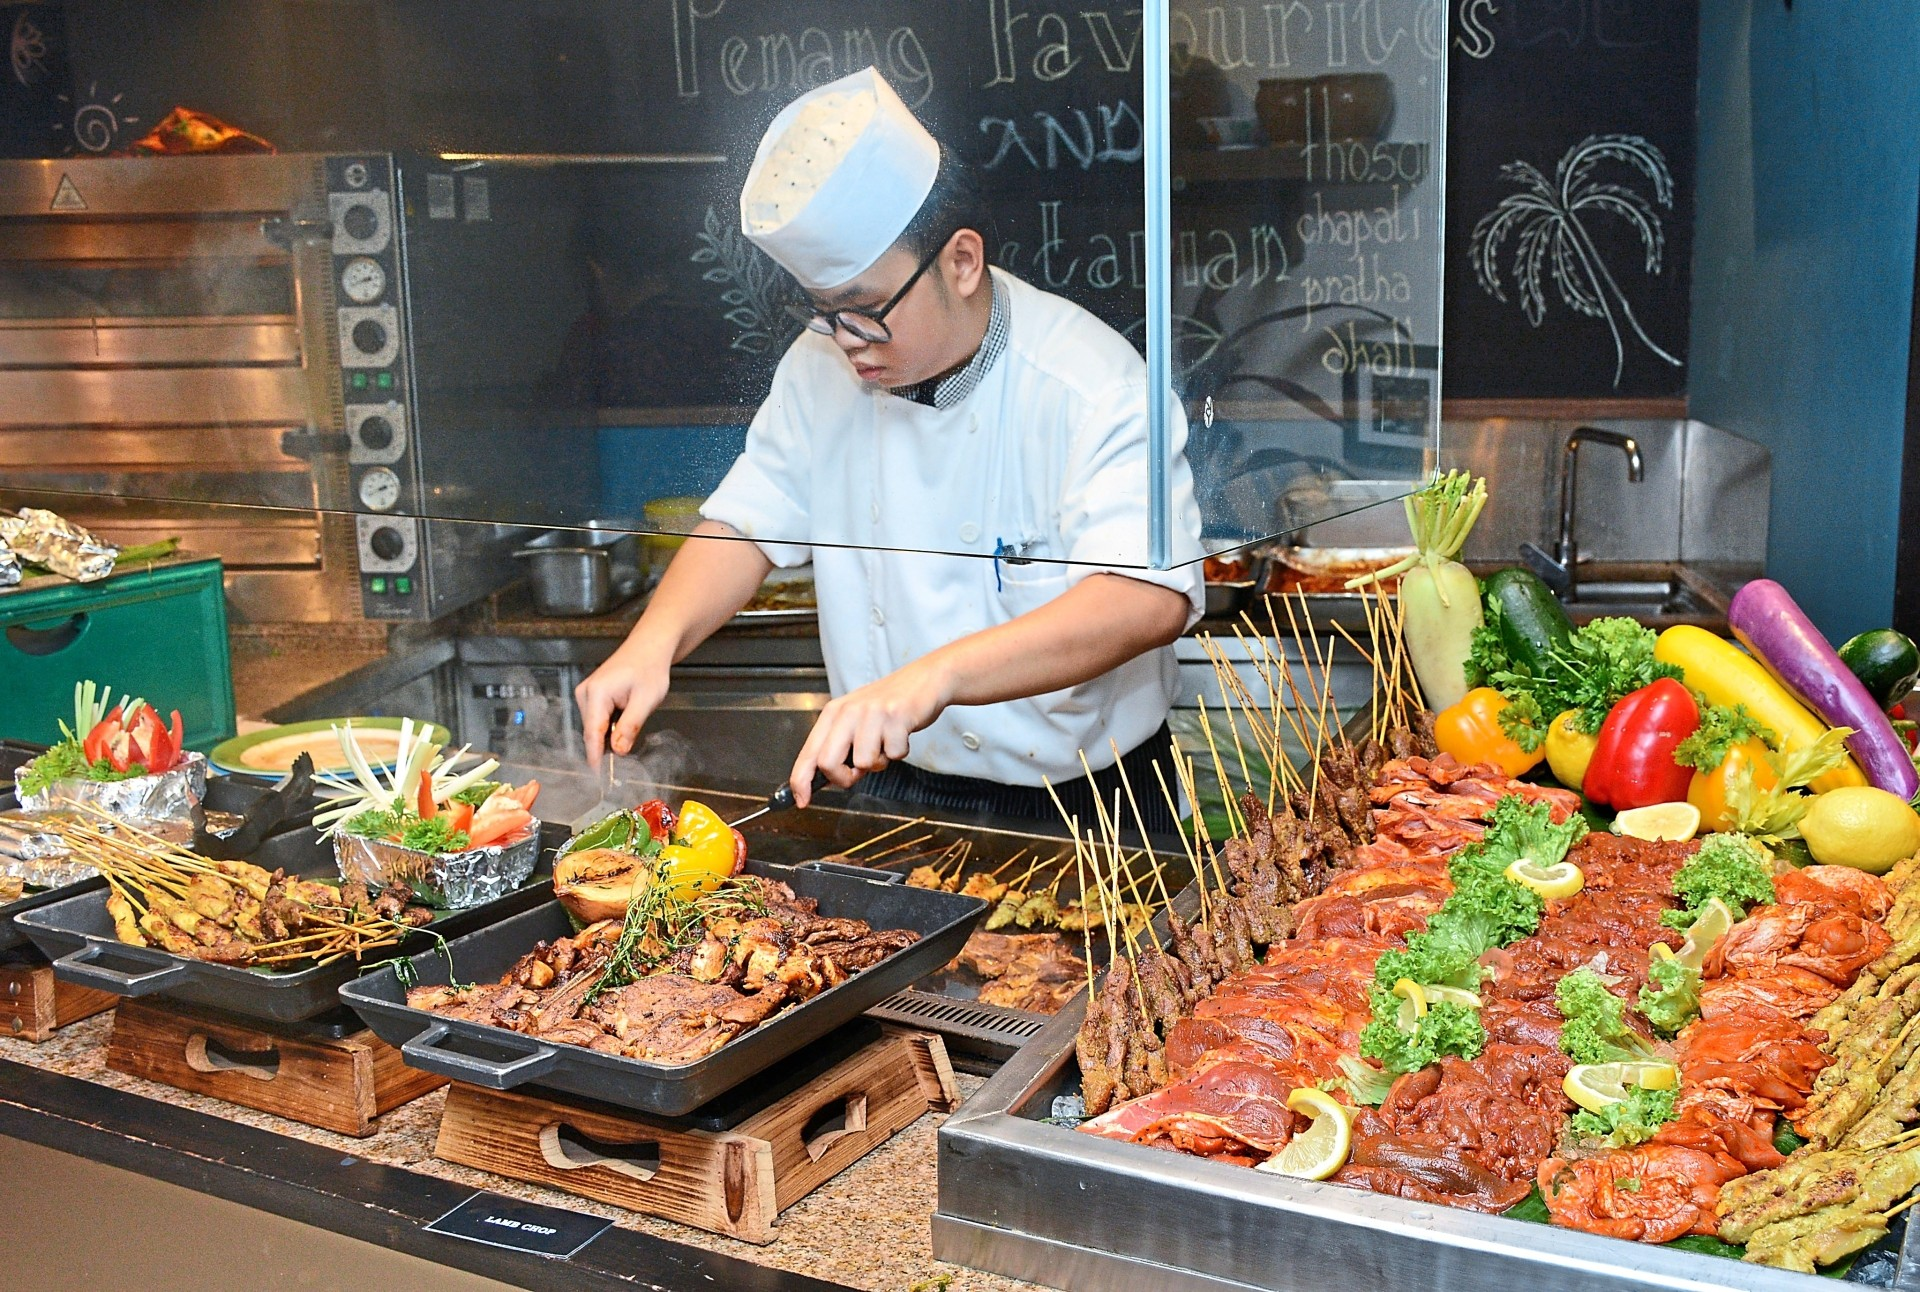 The Live Grill station dishes up succulent cuts of meat, fish and satay. (Left pic) An abundance of snow crab legs, yabbies, tiger prawns, mussels and more await in the Sea and Grill Buffet Dinner.